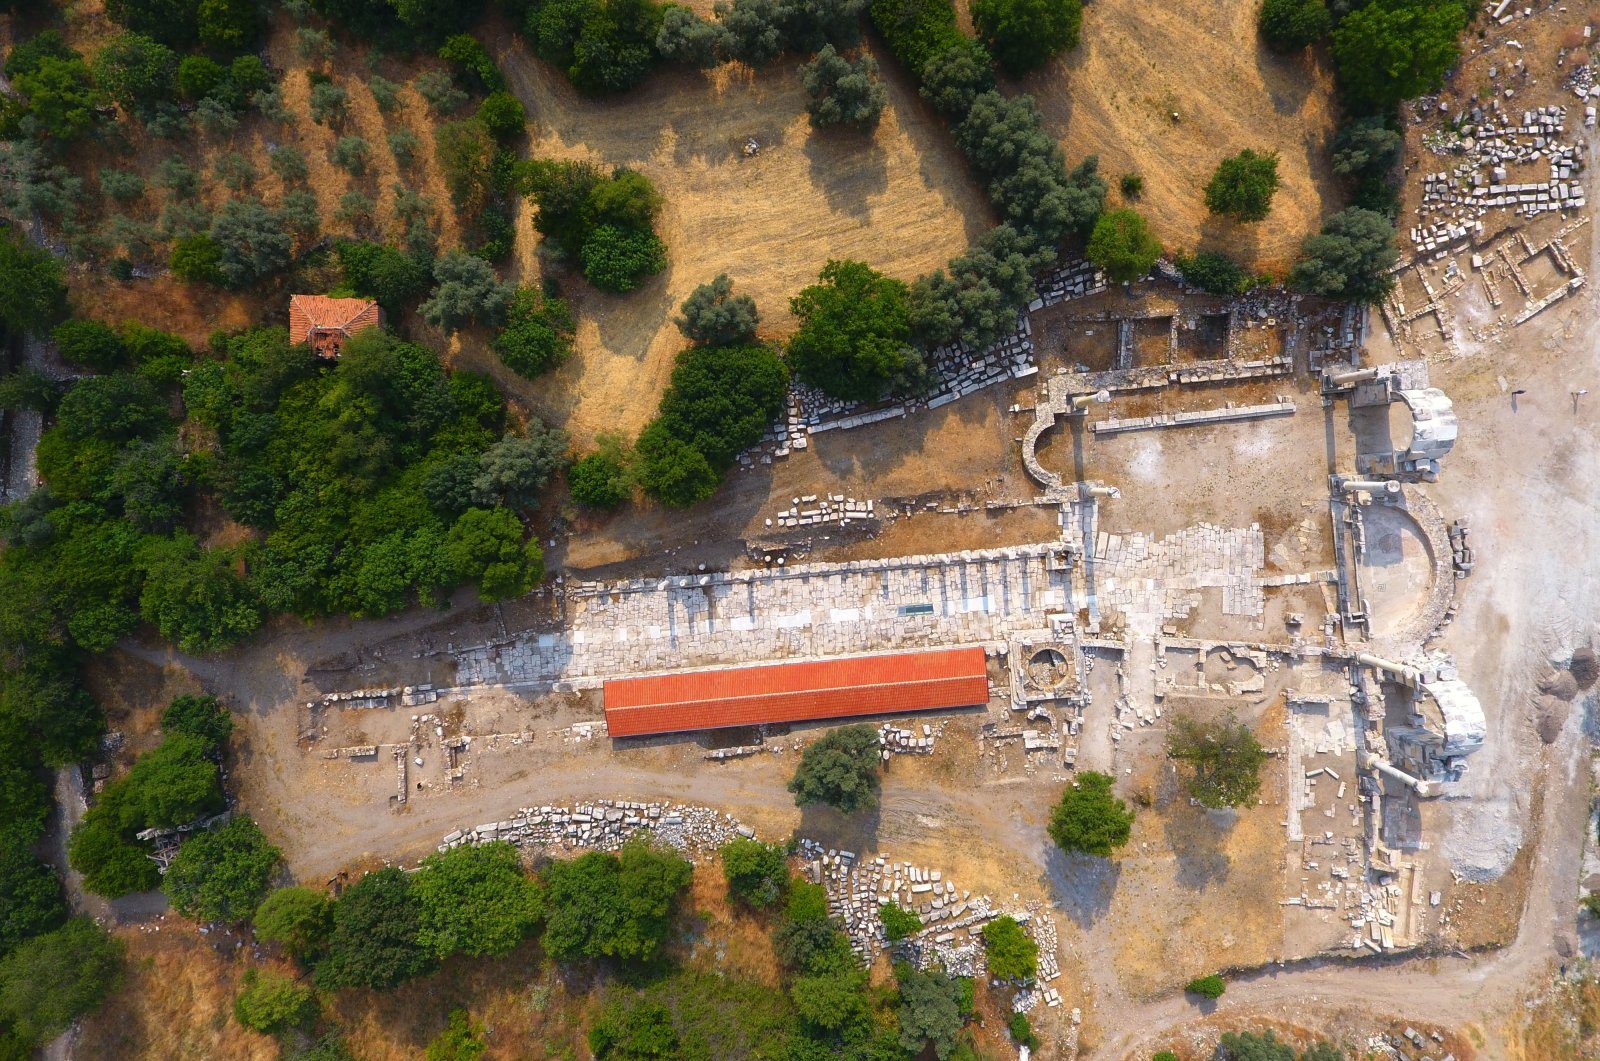 The recently restored northern arched gates ofthe Ancient Greek city of Stratonikeia - June 13, 2021. (AA Photo)